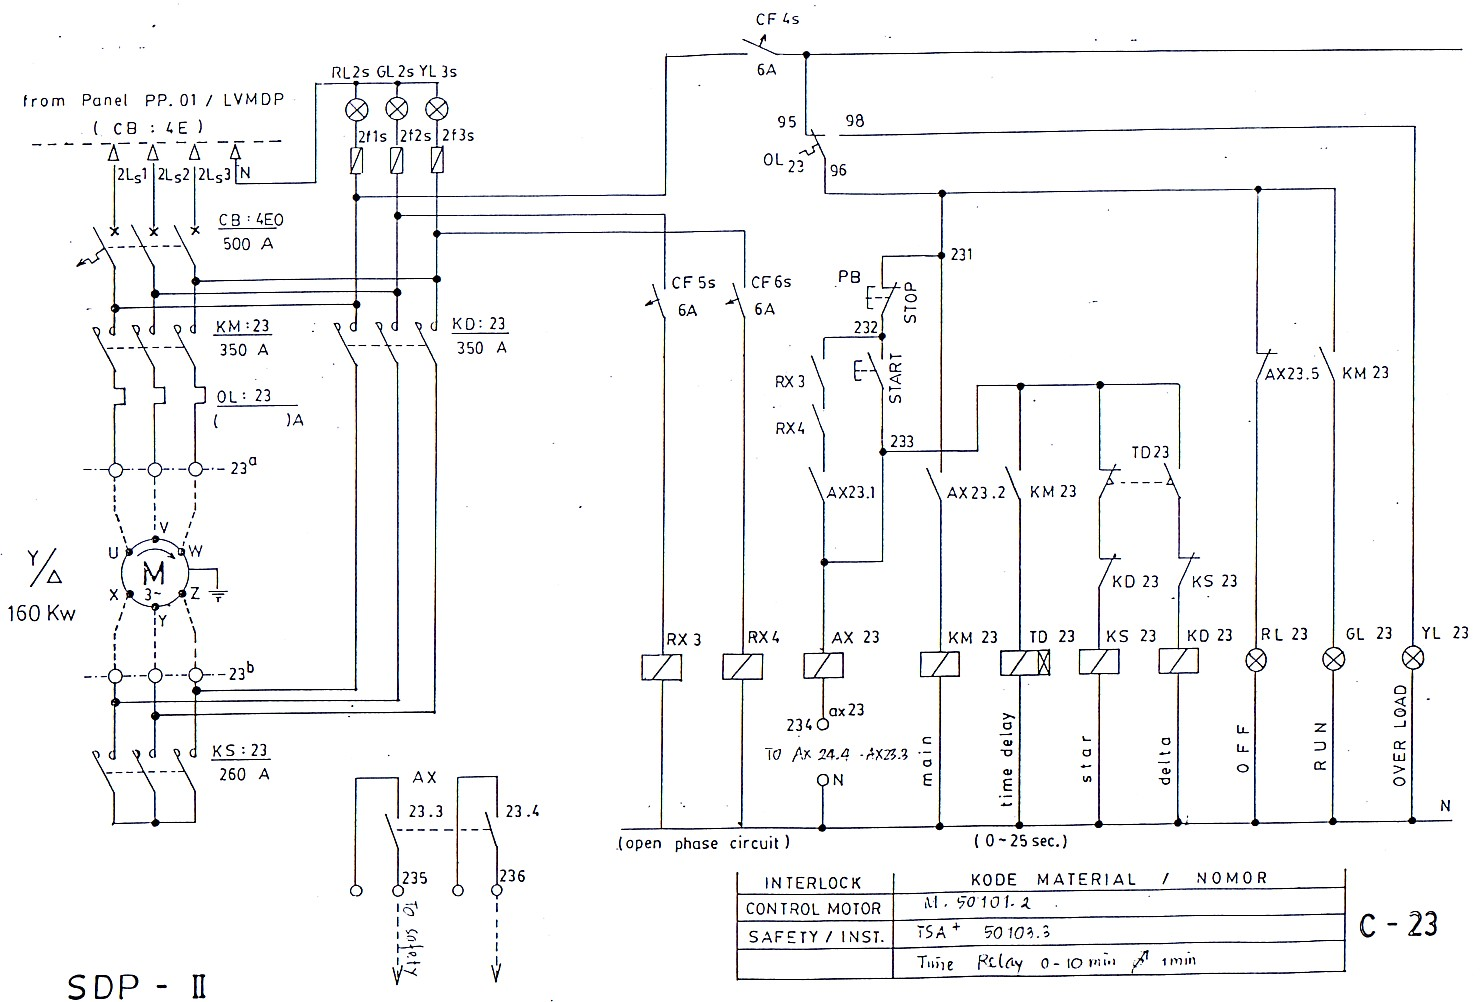 penerangan gambar single line wiring diagram